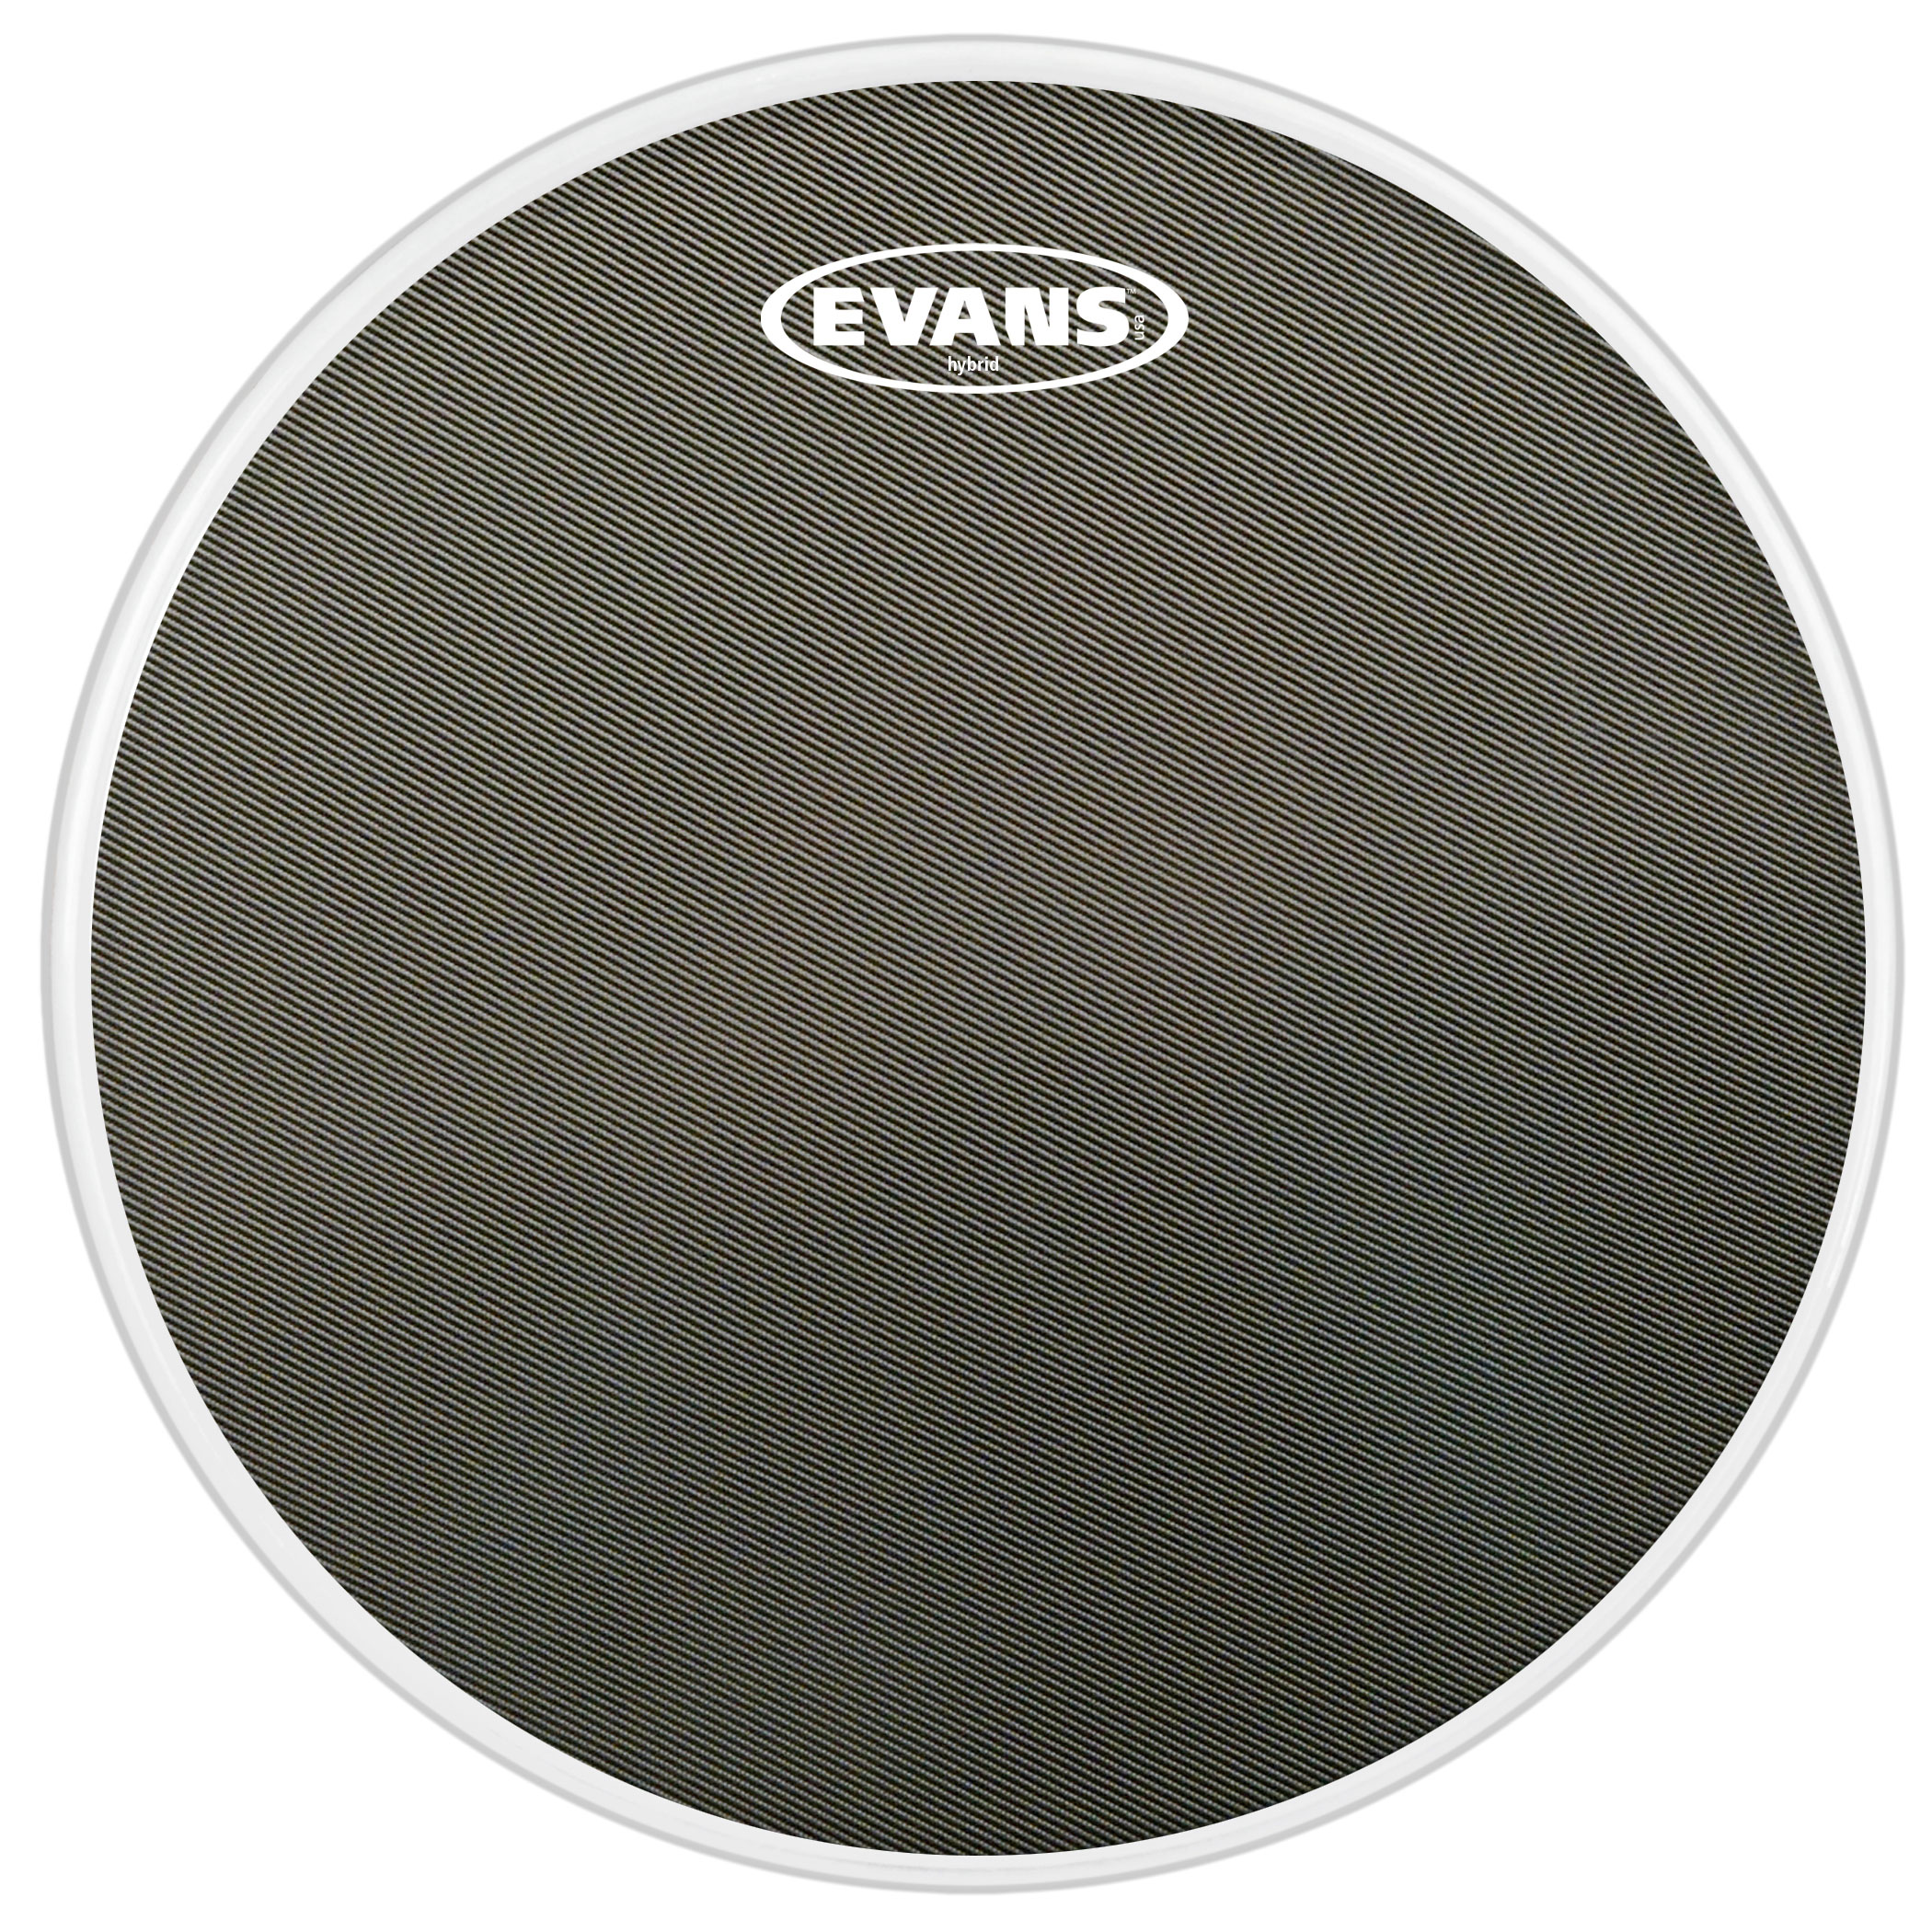 "Evans 13"" Hybrid Coated Snare Top Head"